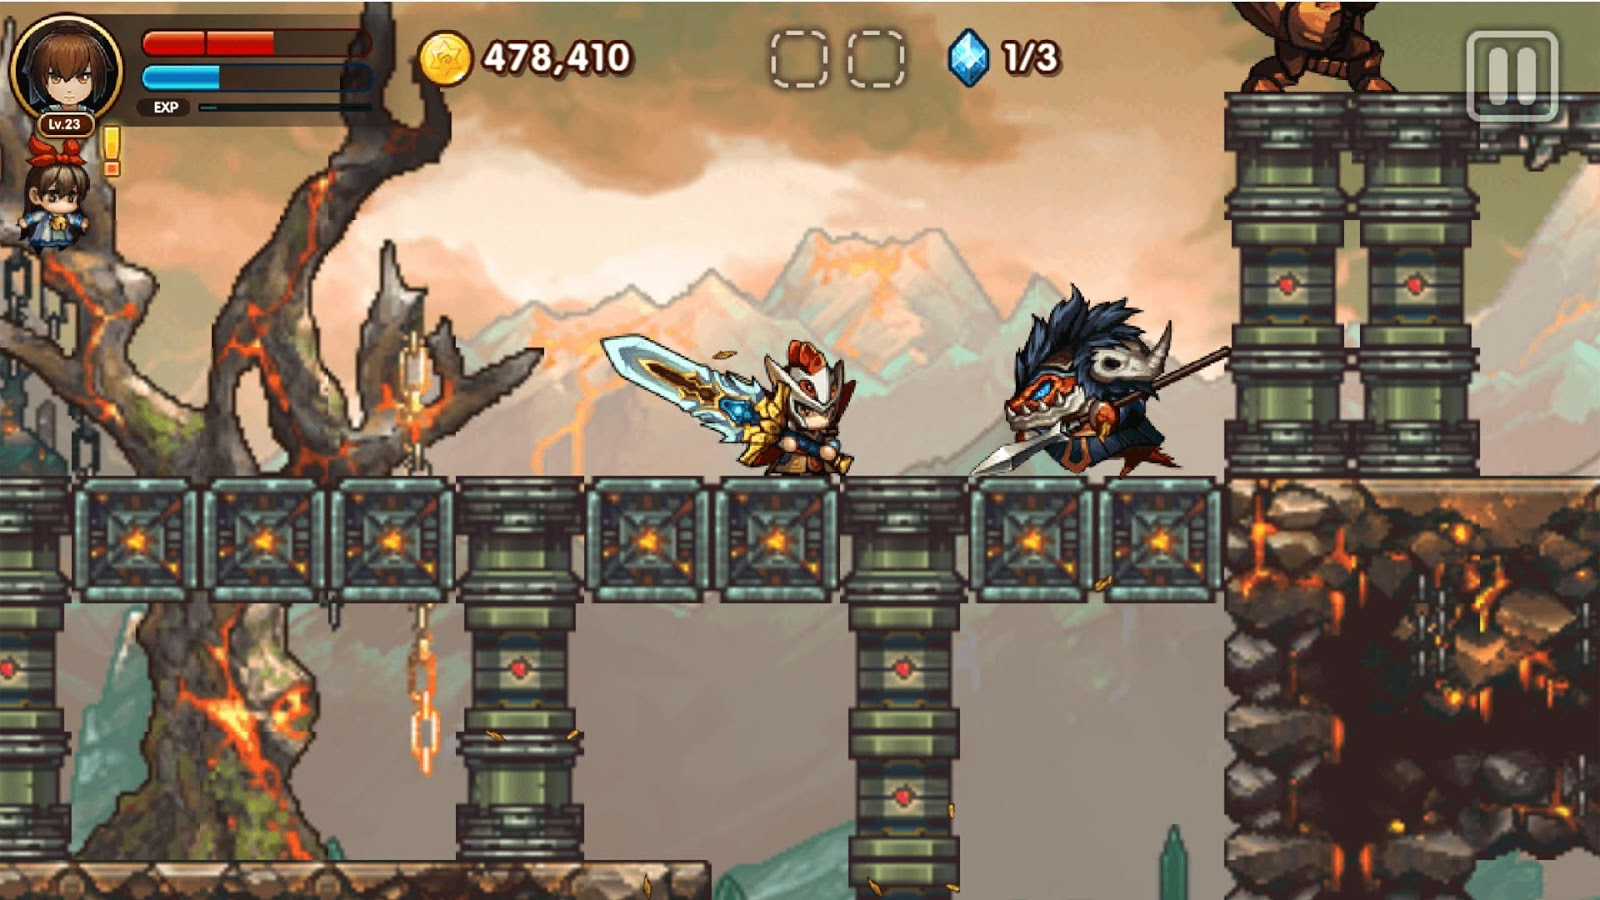 The East New World Screenshot 12